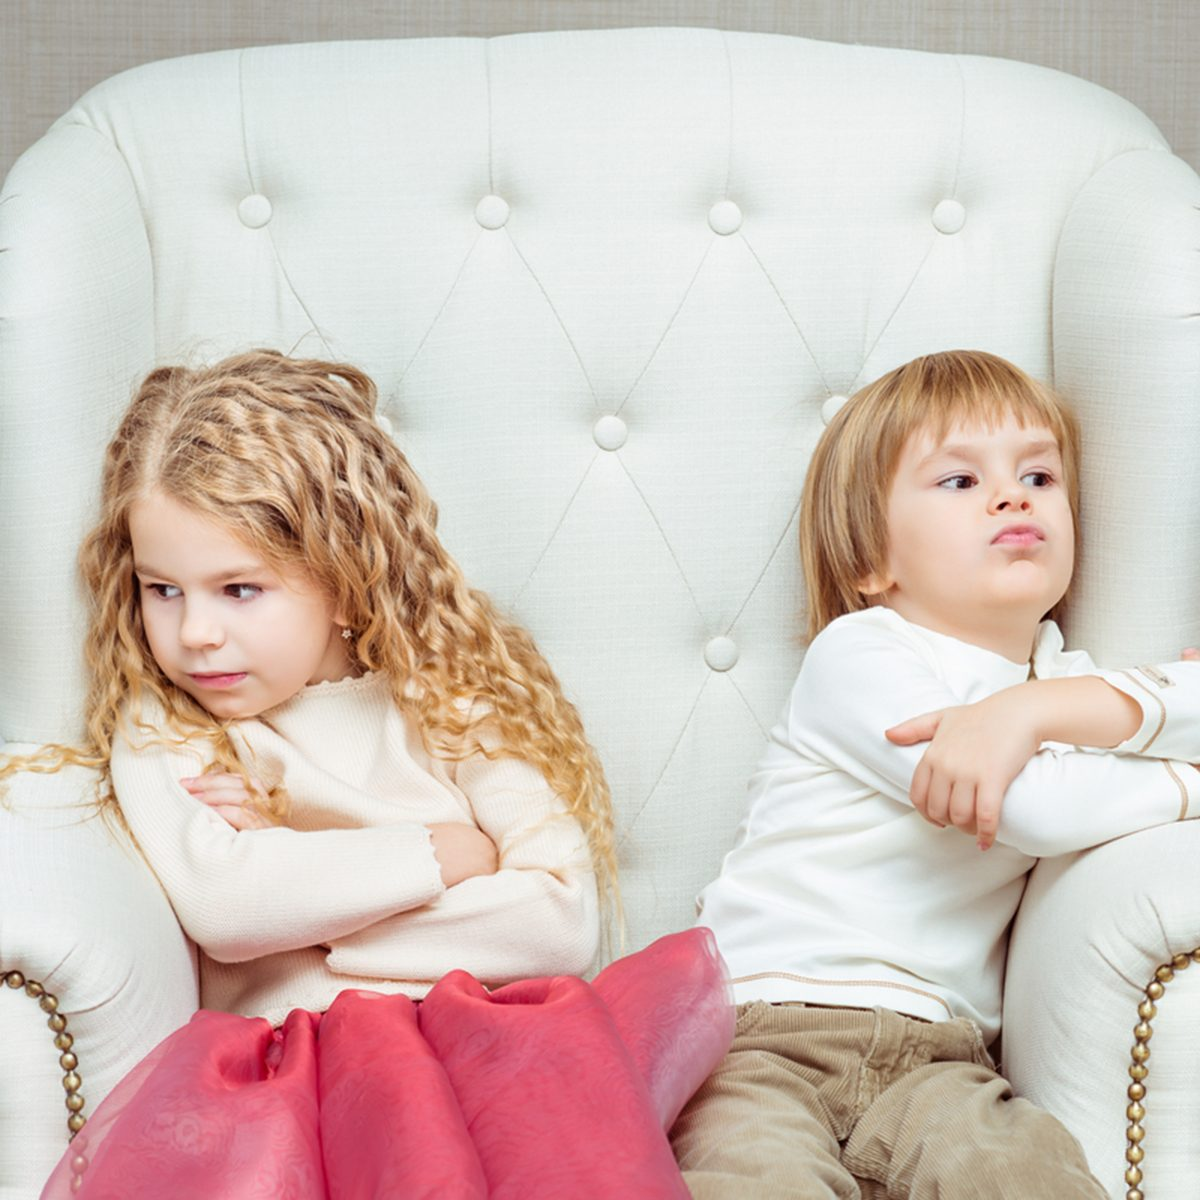 Cute little siblings (boy and girl) being at odds with each other